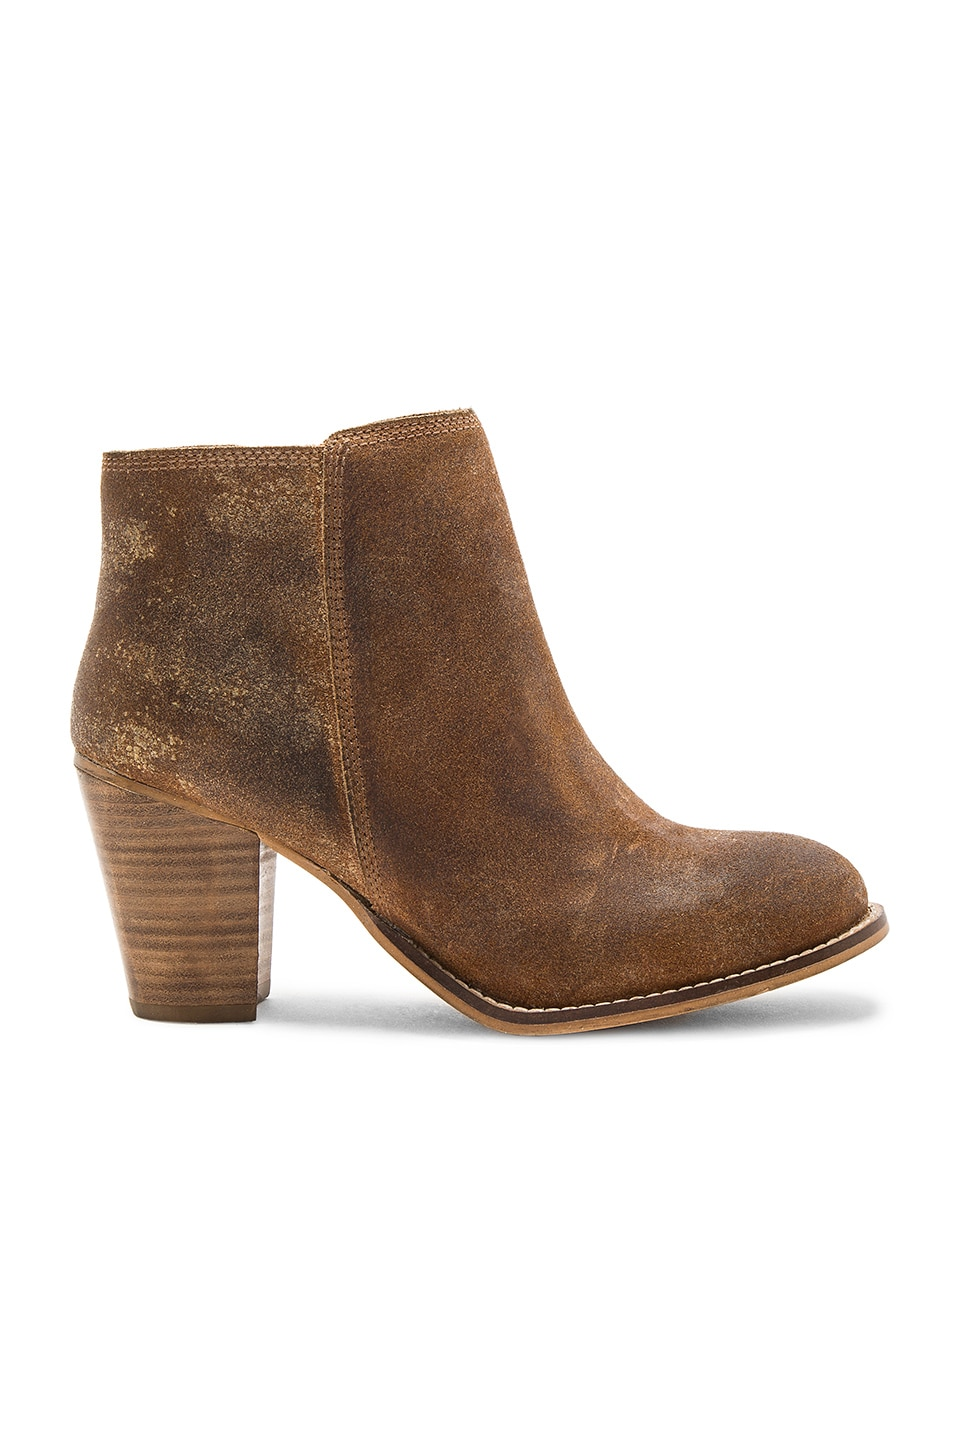 Seychelles Clavichord II Bootie Leather in Cognac Puma